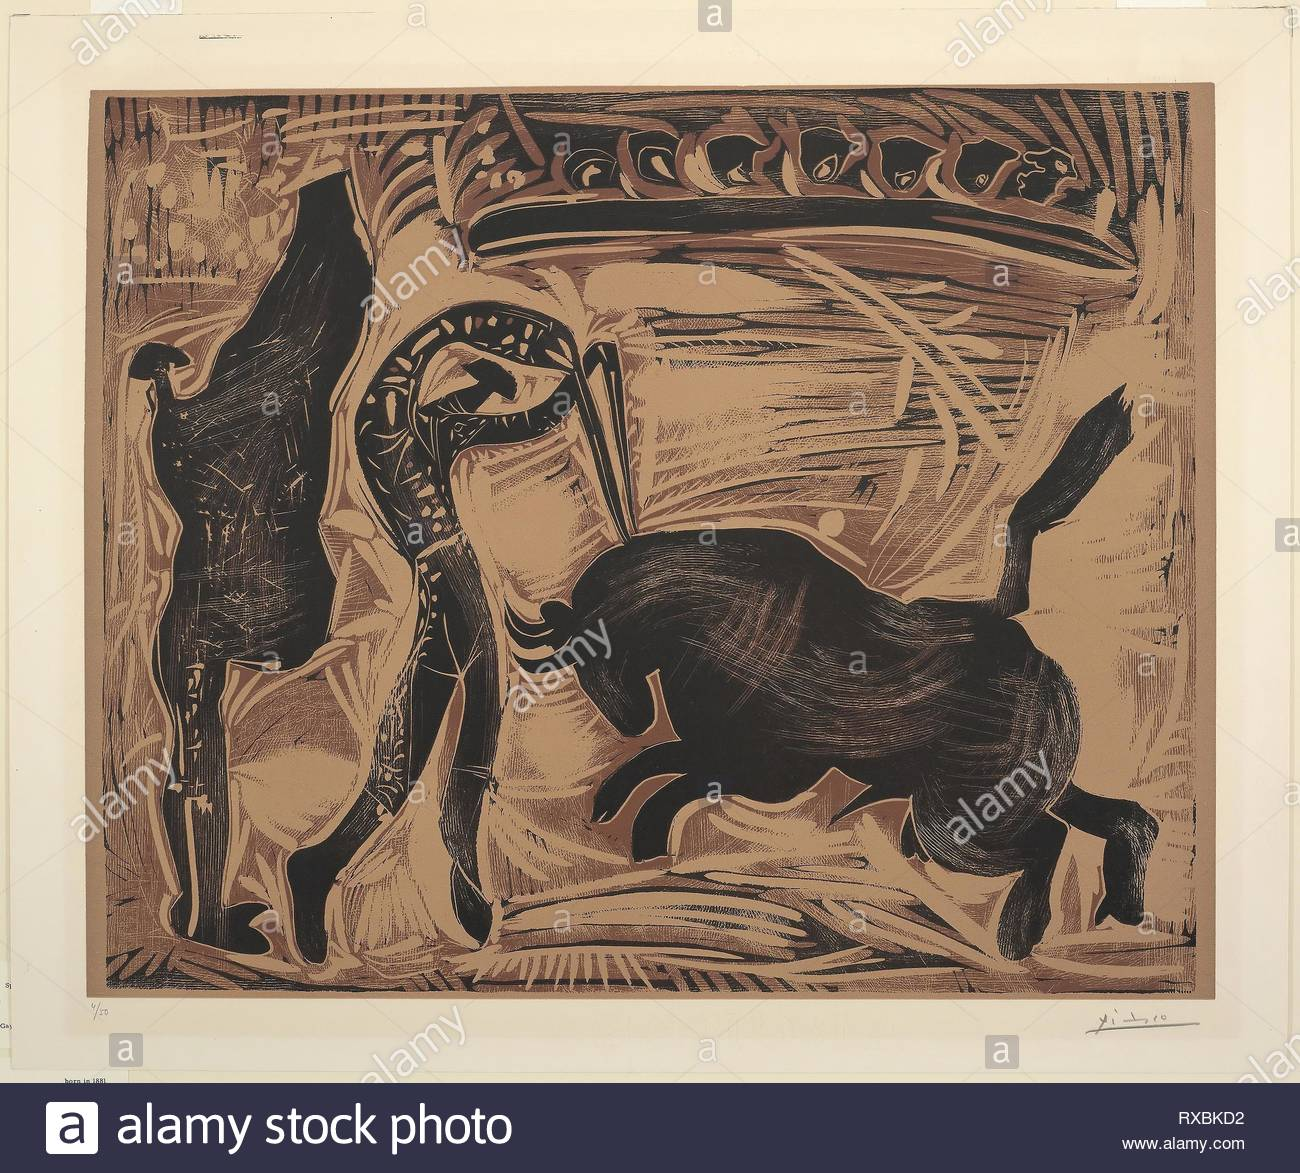 The Banderilleros. Pablo Picasso (Spanish, 1881-1973); printed by Hidalgo Arnéra; published by Galerie Louise Leiris. Date: 1959. Dimensions: 535 x 665 mm (image); 623 x 752 mm (sheet). Linoleum engraving on ivory wove paper. Origin: Spain. Museum: The Chicago Art Institute. - Stock Image